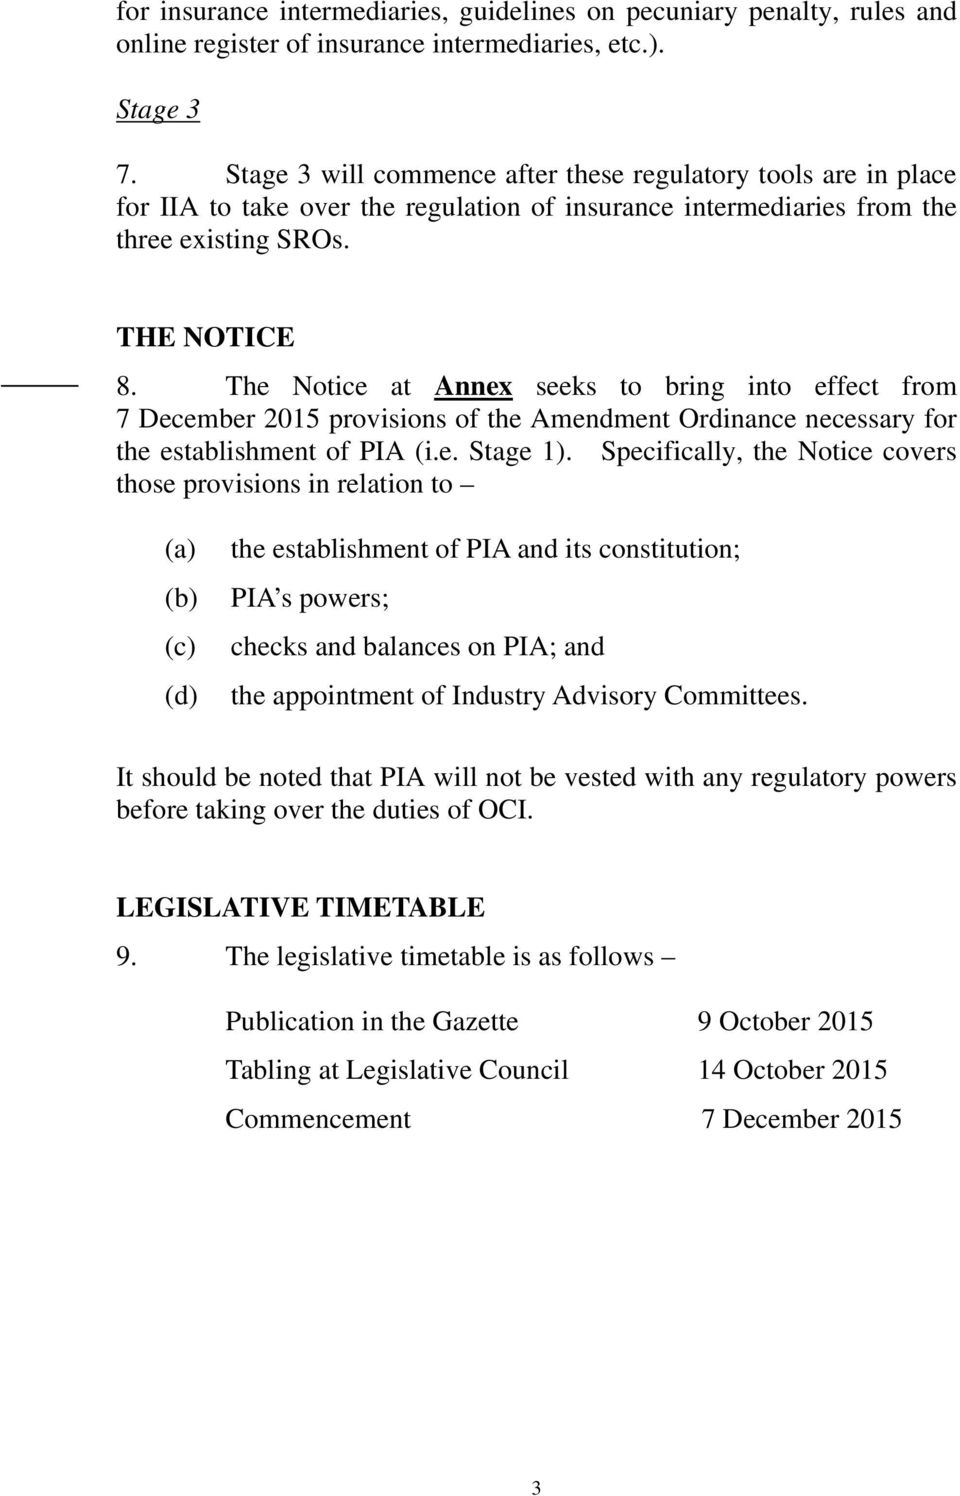 The Notice at Annex seeks to bring into effect from 7 December 2015 provisions of the Amendment Ordinance necessary for the establishment of PIA (i.e. Stage 1).